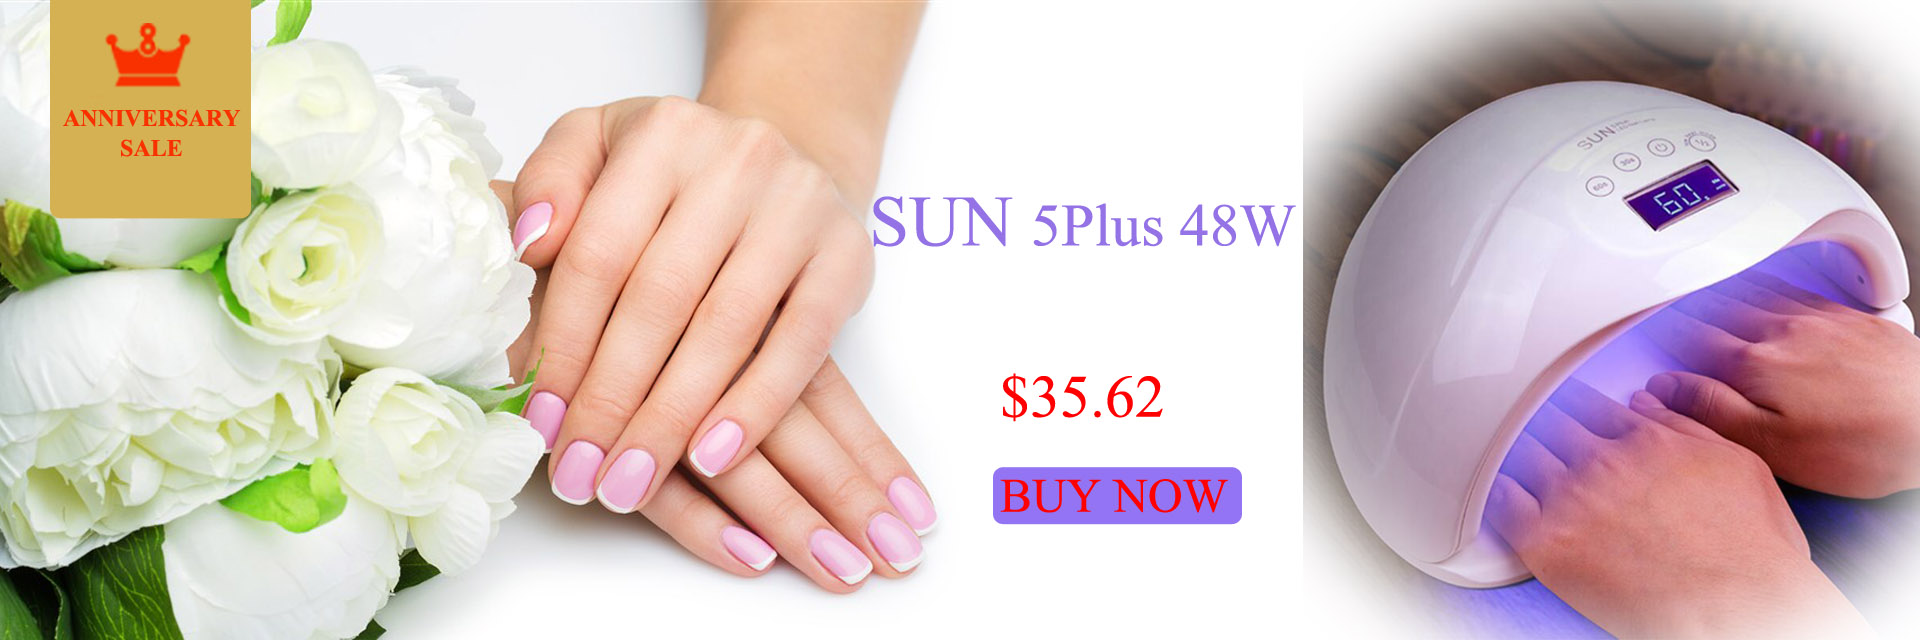 Feecy Nail Art Store - Small Orders Online Store, Hot Selling and ...